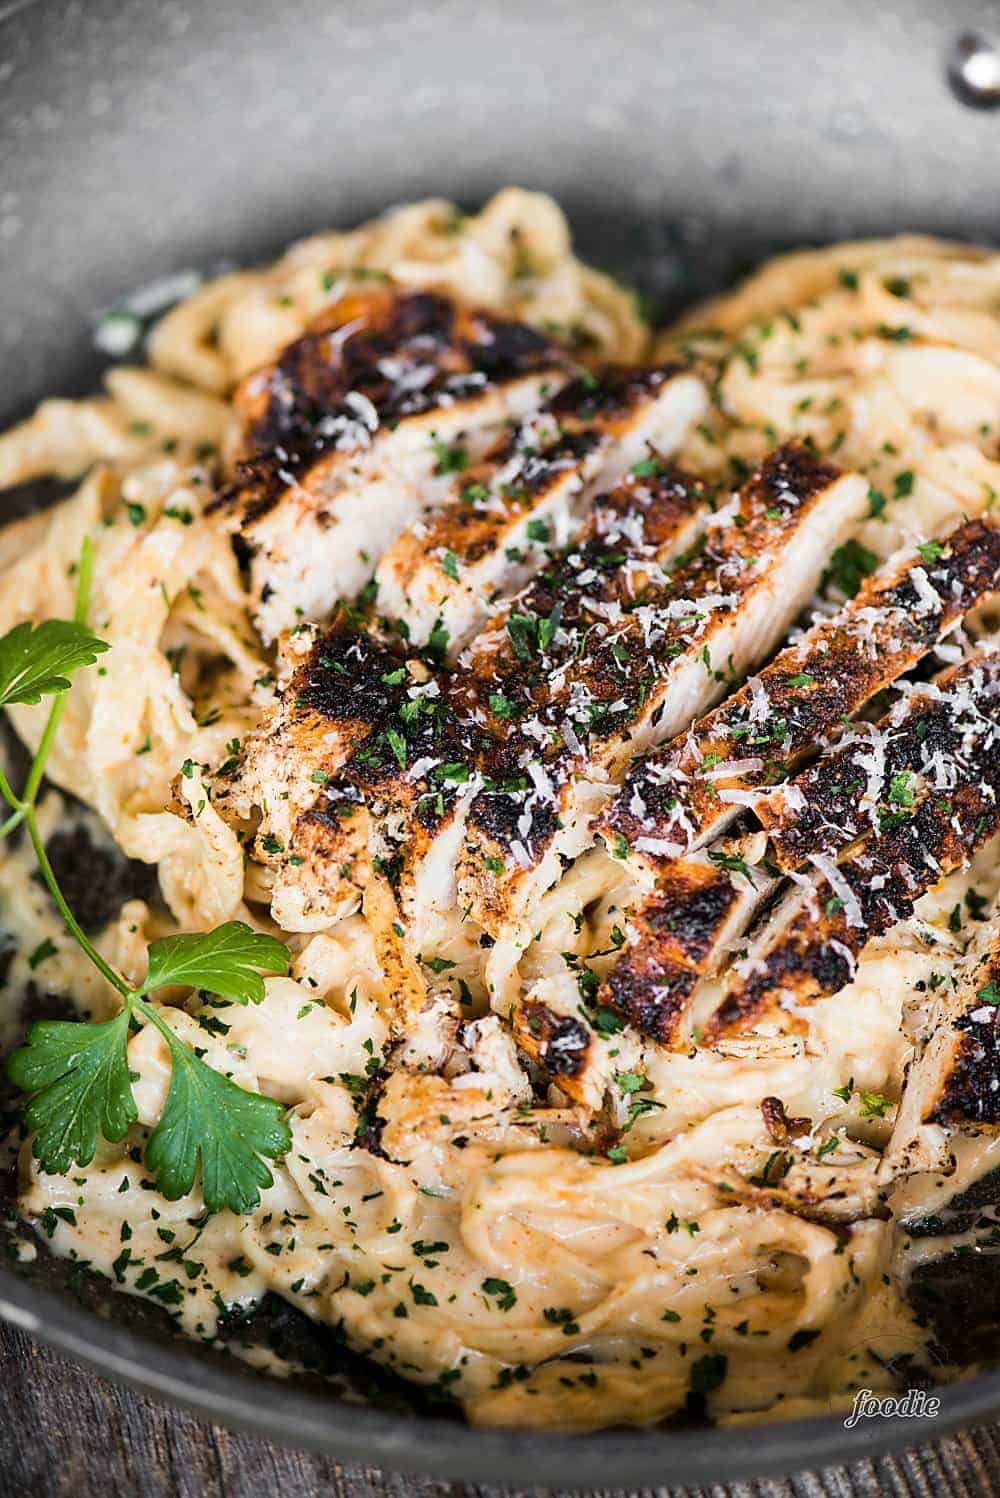 sliced blackened cajun chicken slices over fettuccine alfredo